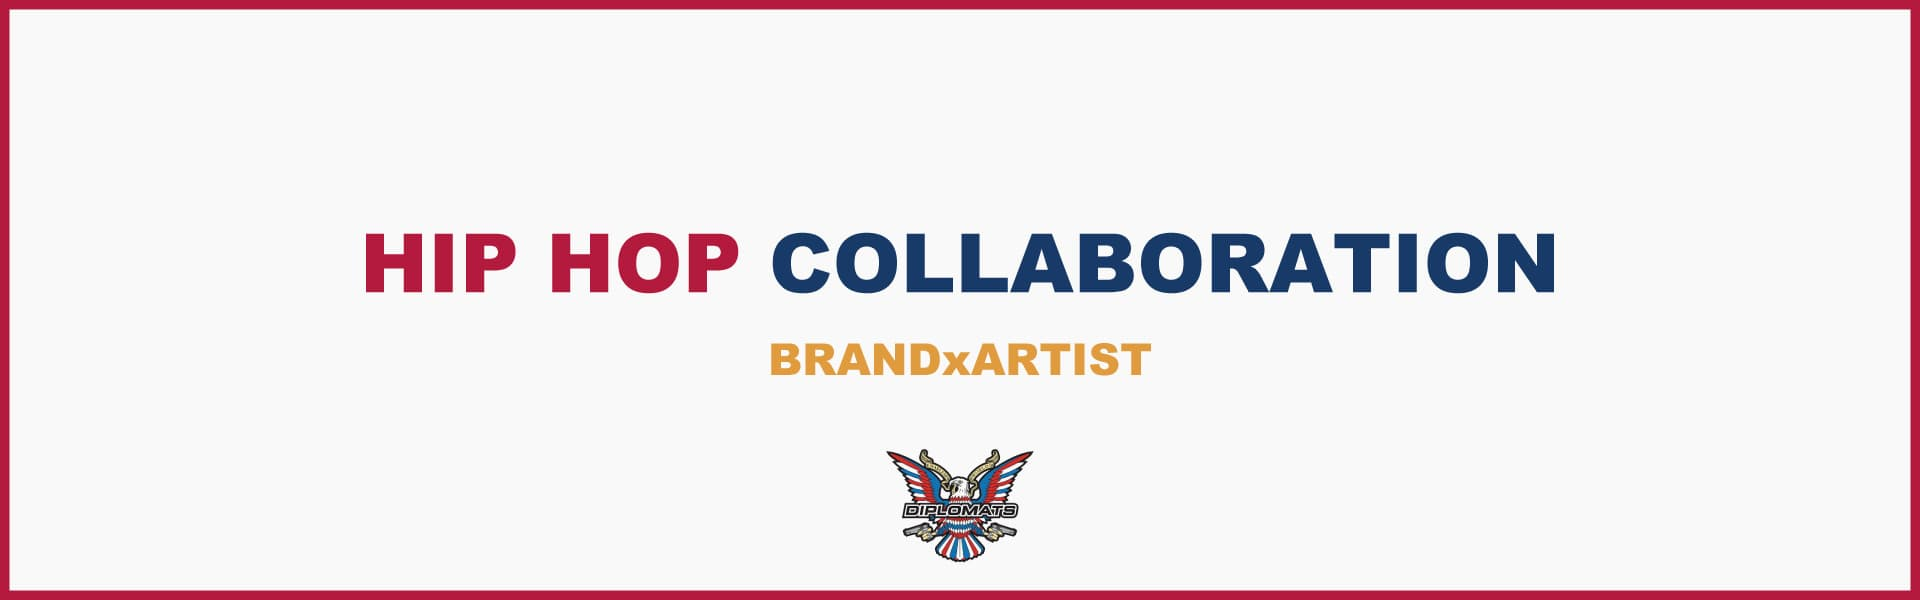 hiphopcollaboration